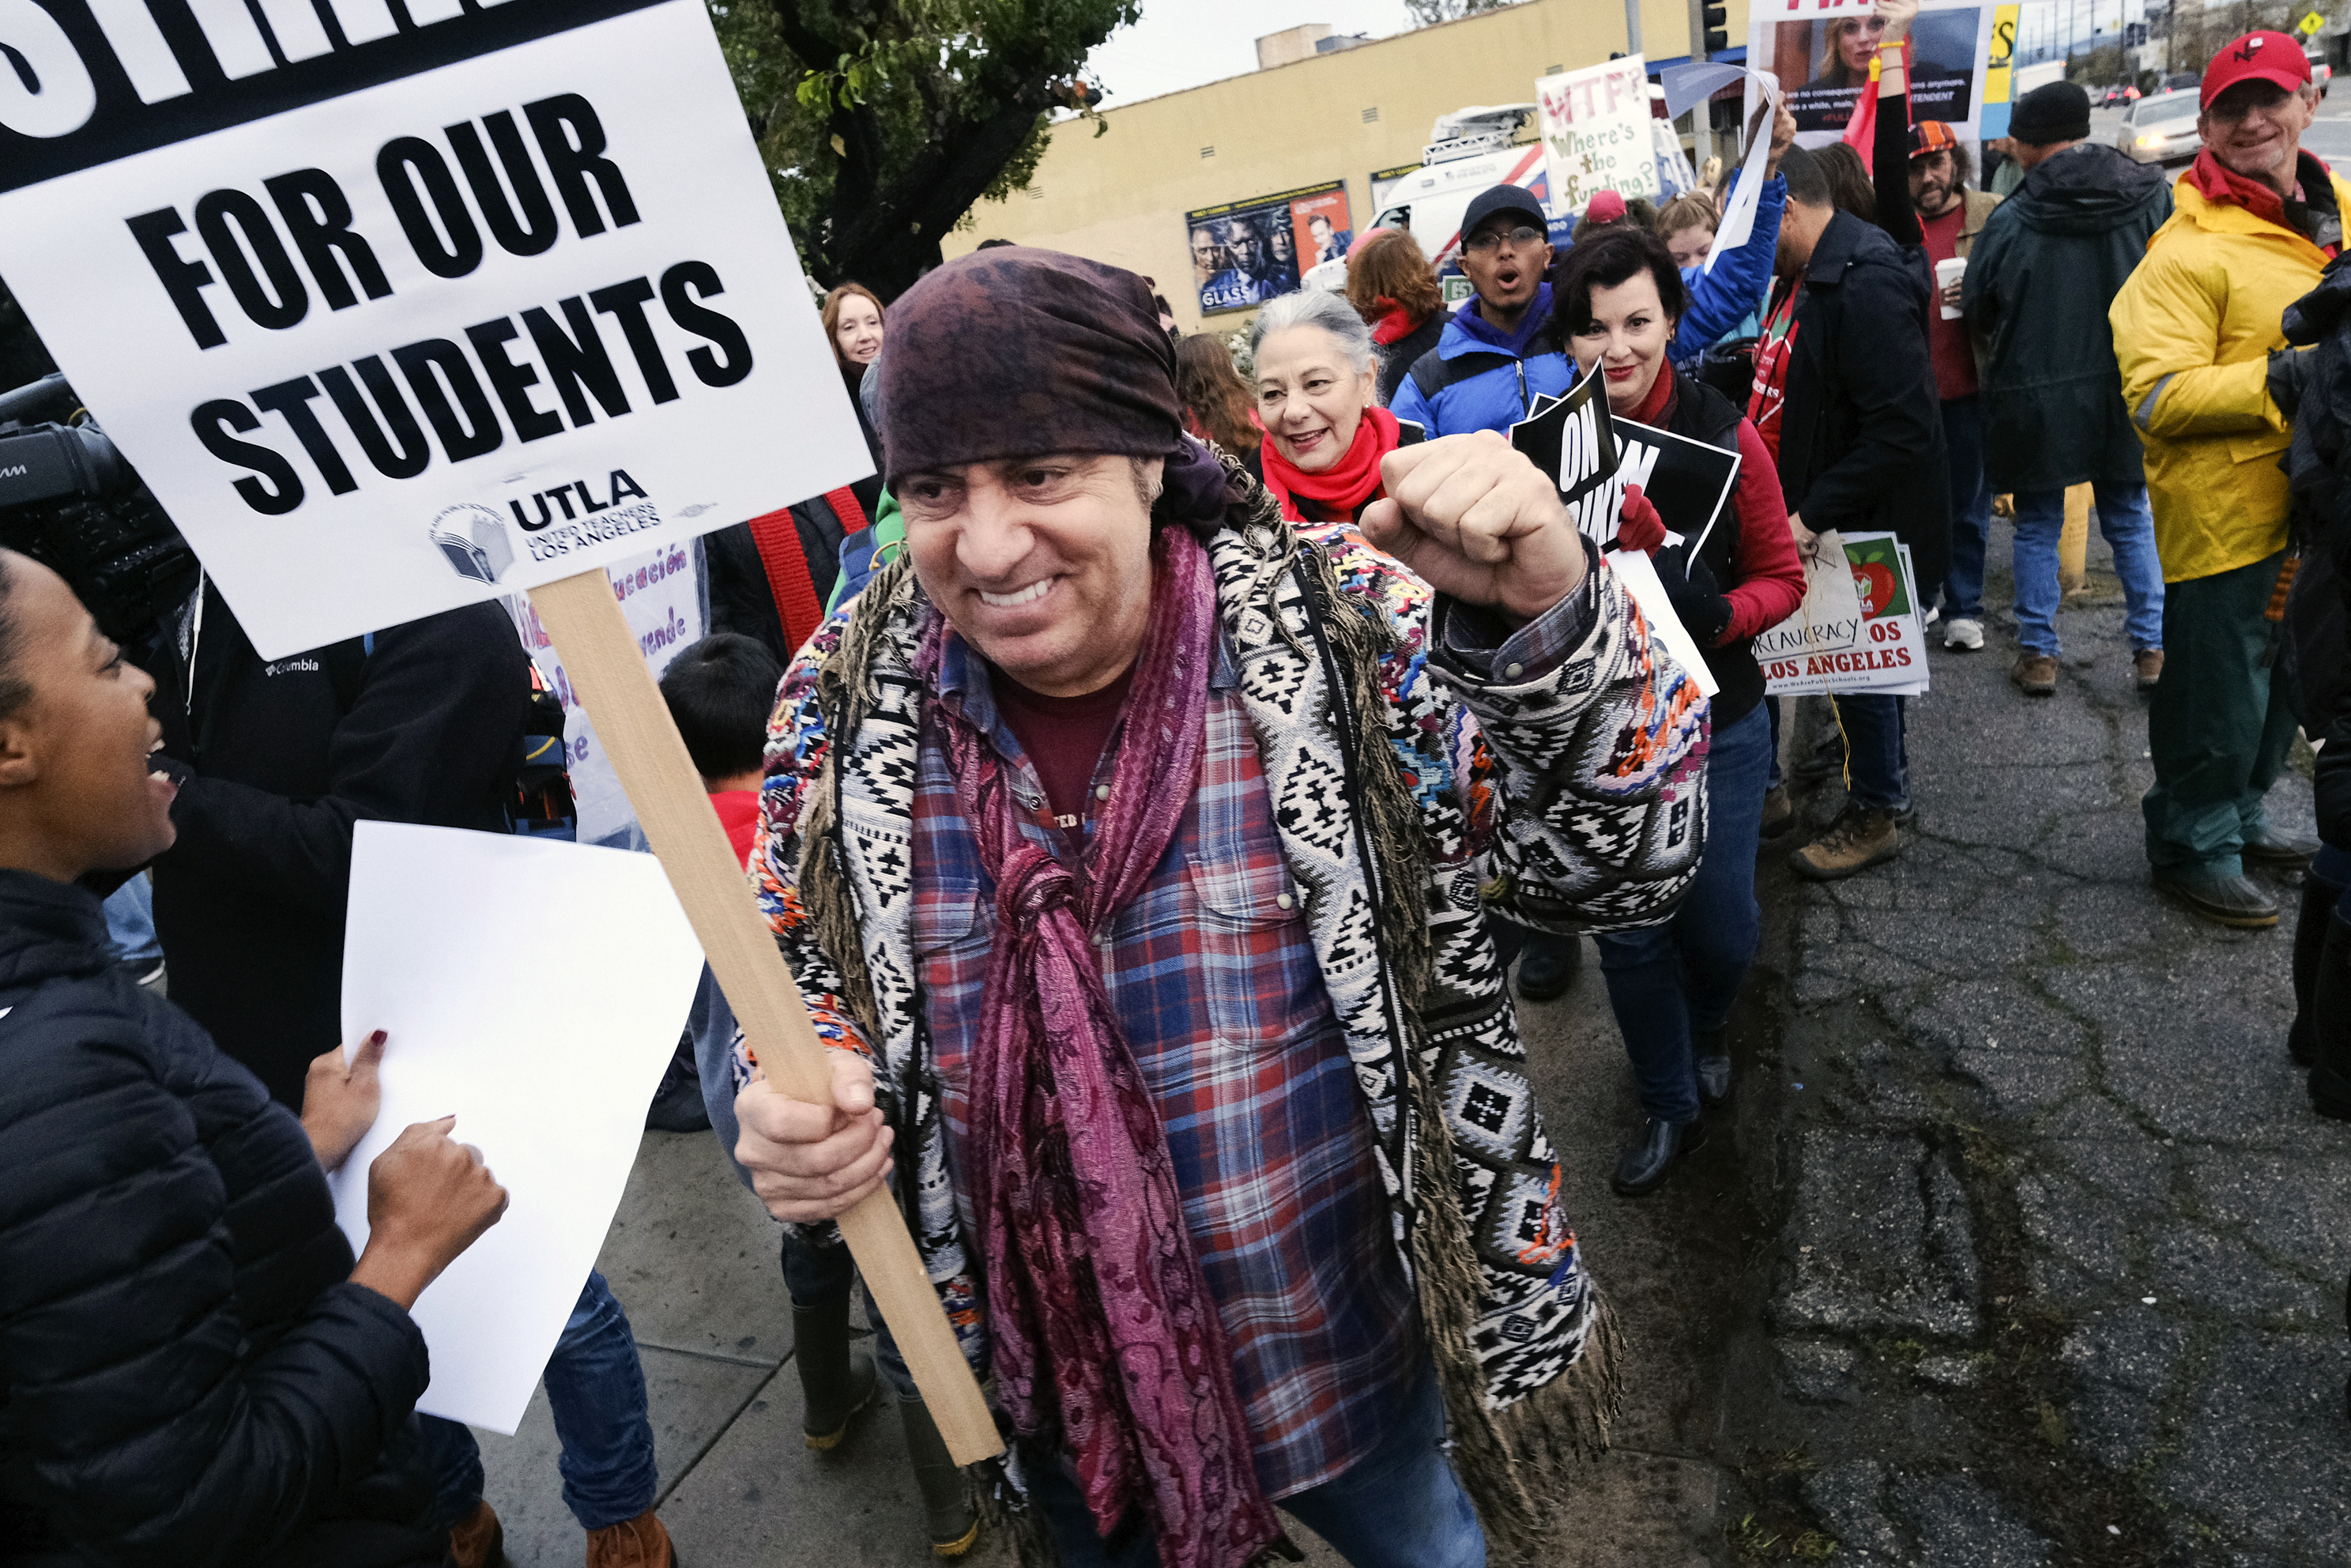 Actor, musician and activist, Steven Van Zandt supports striking teachers on the picket in front of Hamilton High School in Los Angeles on Wednesday, Jan. 16, 2019. School administrators urged the union to resume bargaining as tens of thousands of teachers planned to walk picket lines for a third day Wednesday. (AP Photo/Richard Vogel)